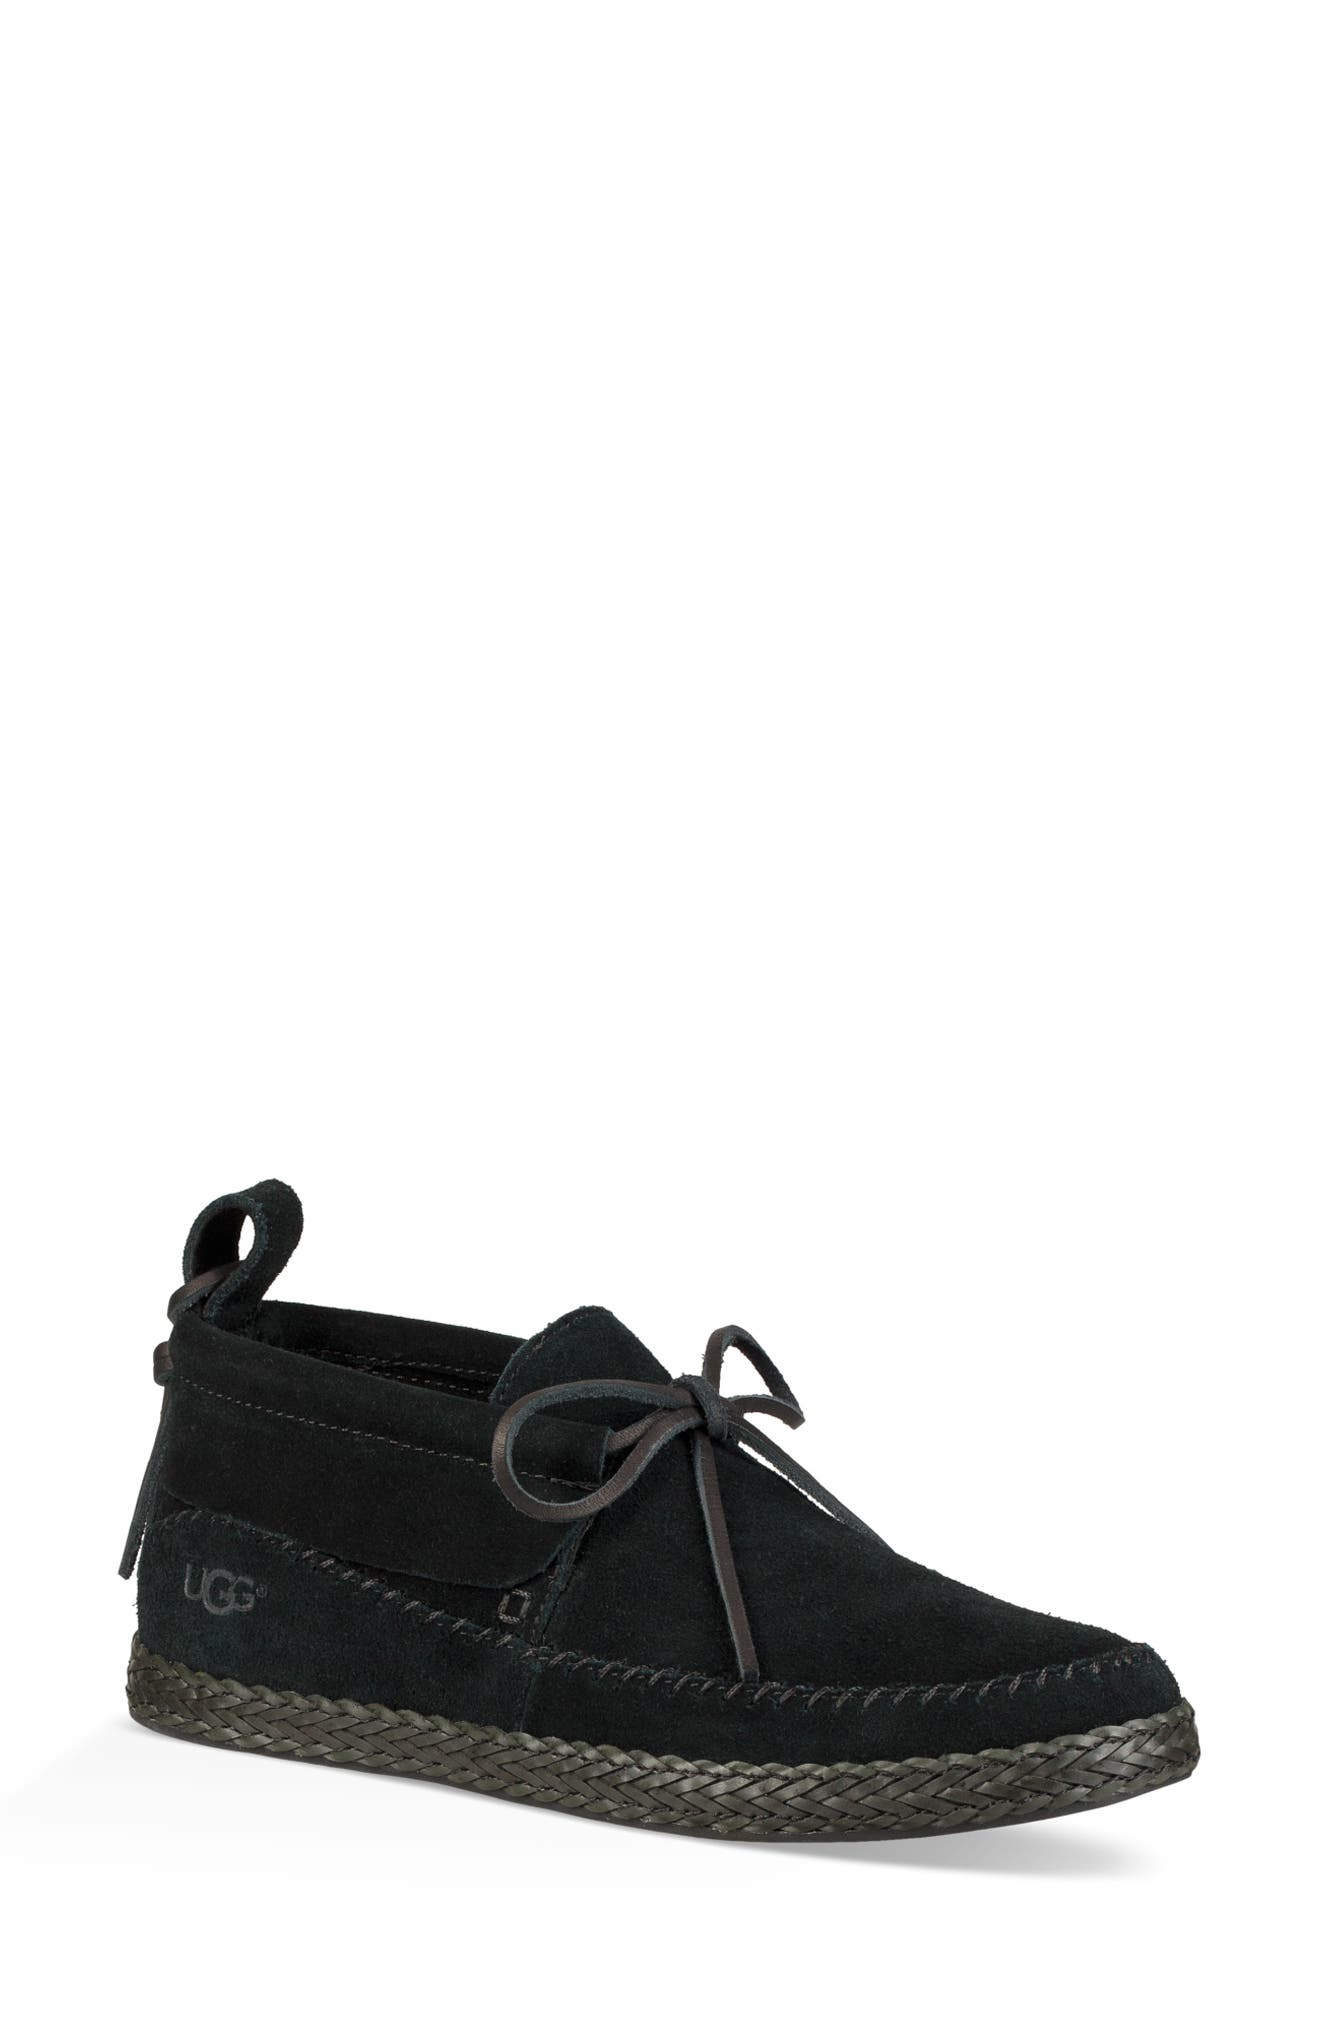 Woodlyn Moc Toe Bootie,                             Main thumbnail 1, color,                             BLACK LEATHER